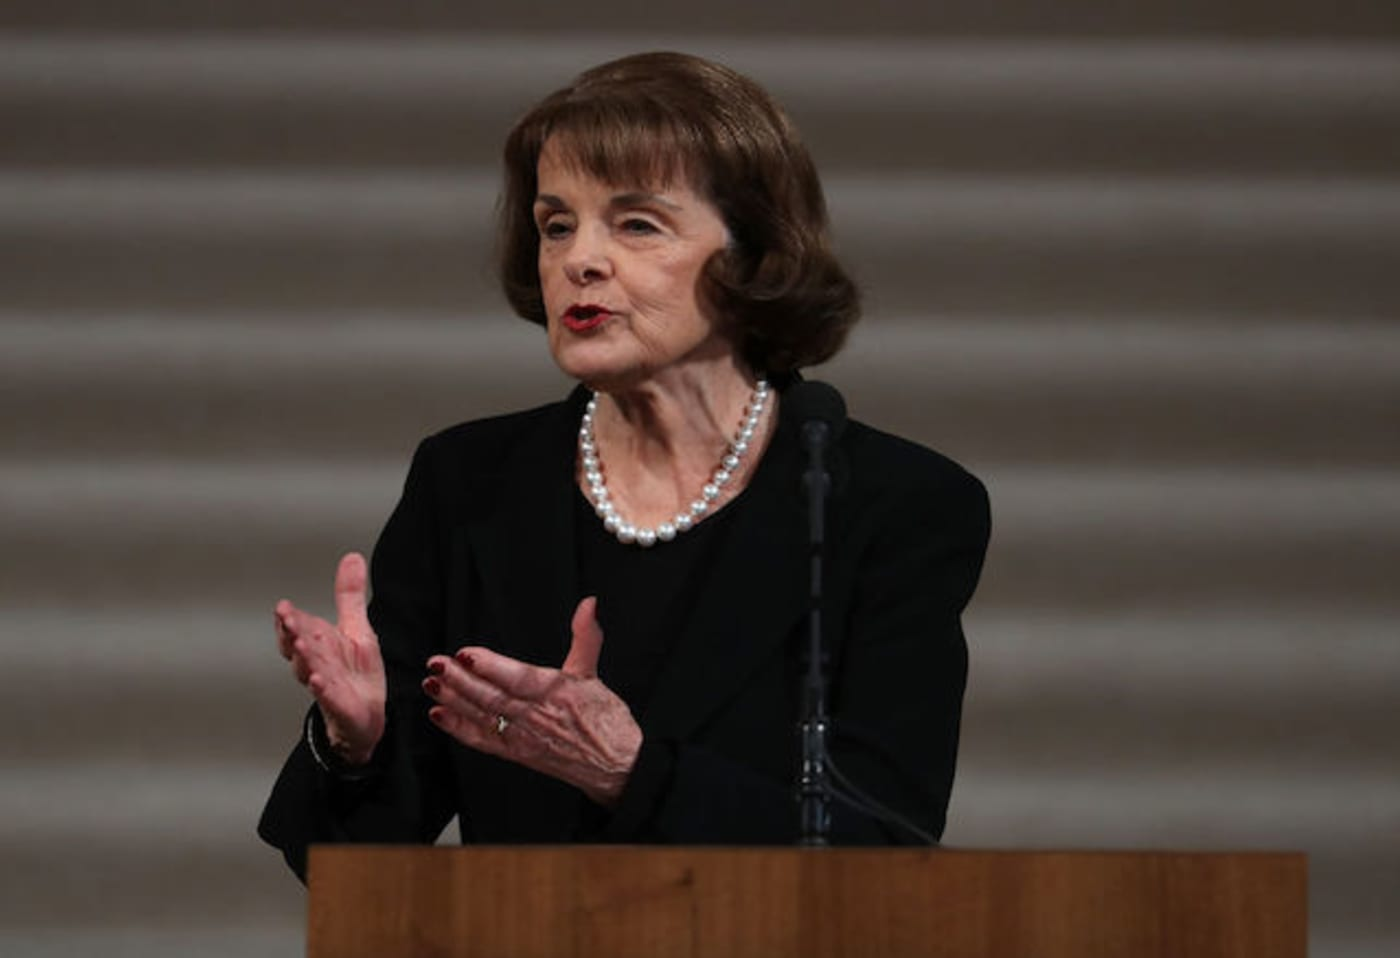 This is a picture of Dianne Feinstein.